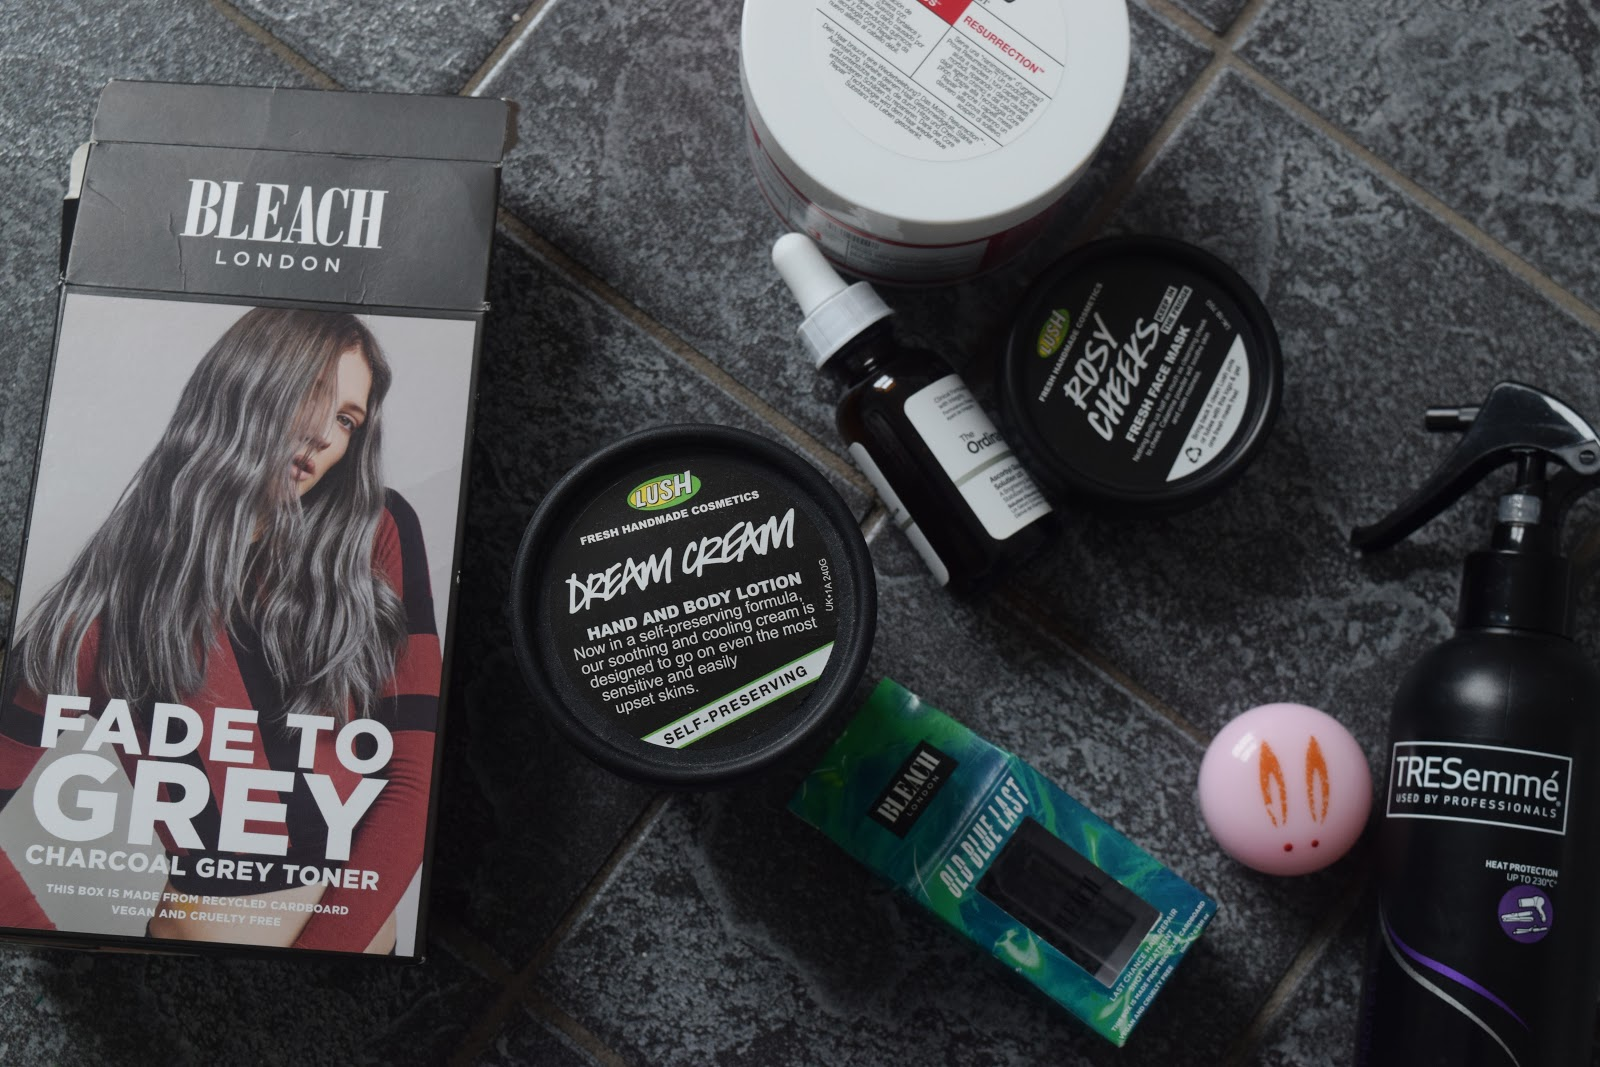 empty beauty products including Lush Bleach London The Ordinary